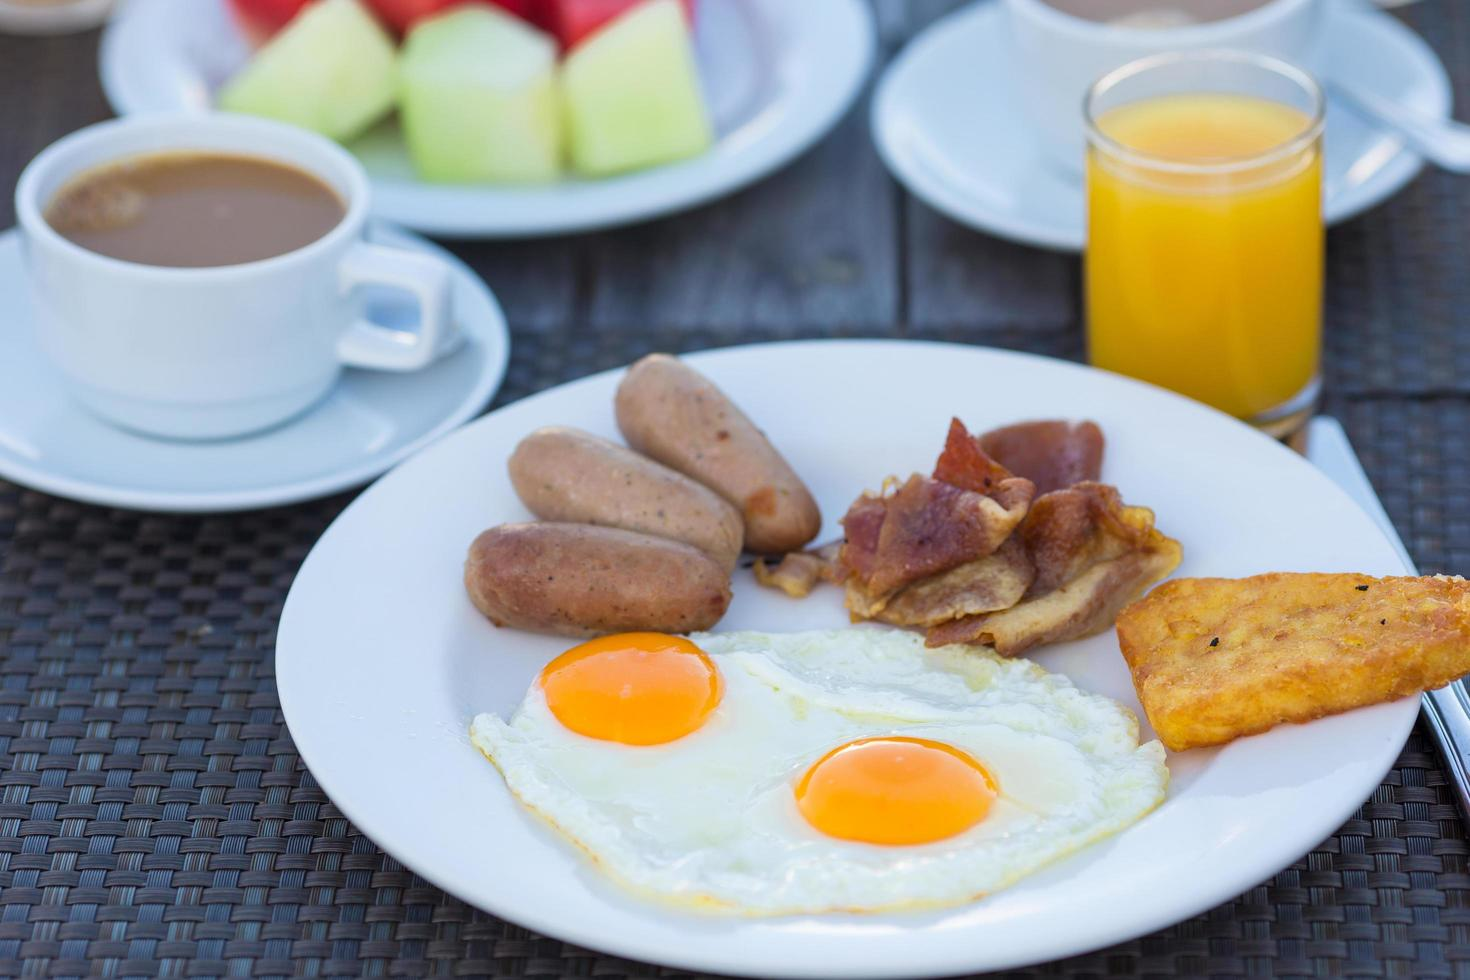 Plate with fried eggs, bacon and sausages photo